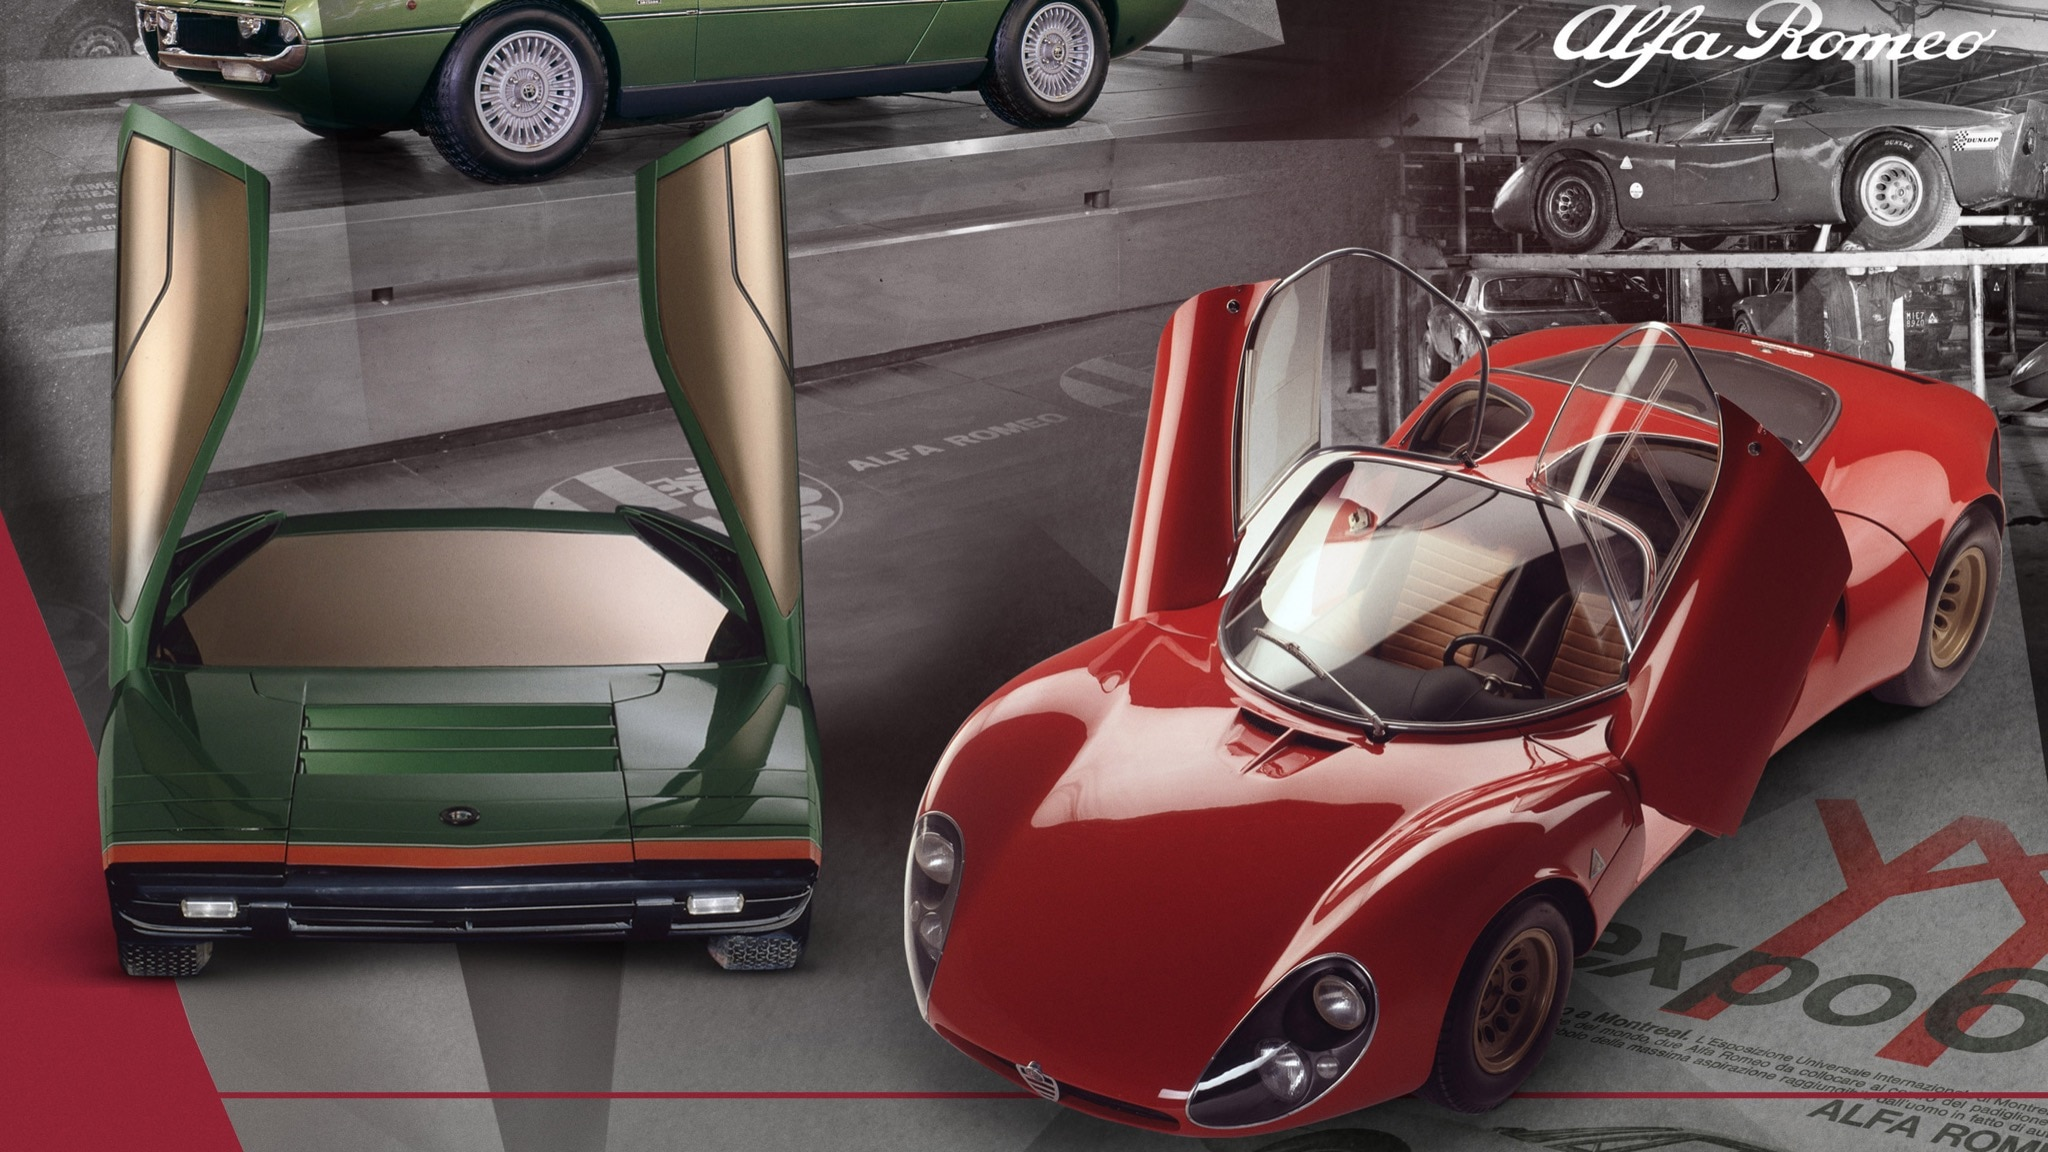 Two Gorgeous Alfa Romeos Show That Car Design Can Change In An Instant